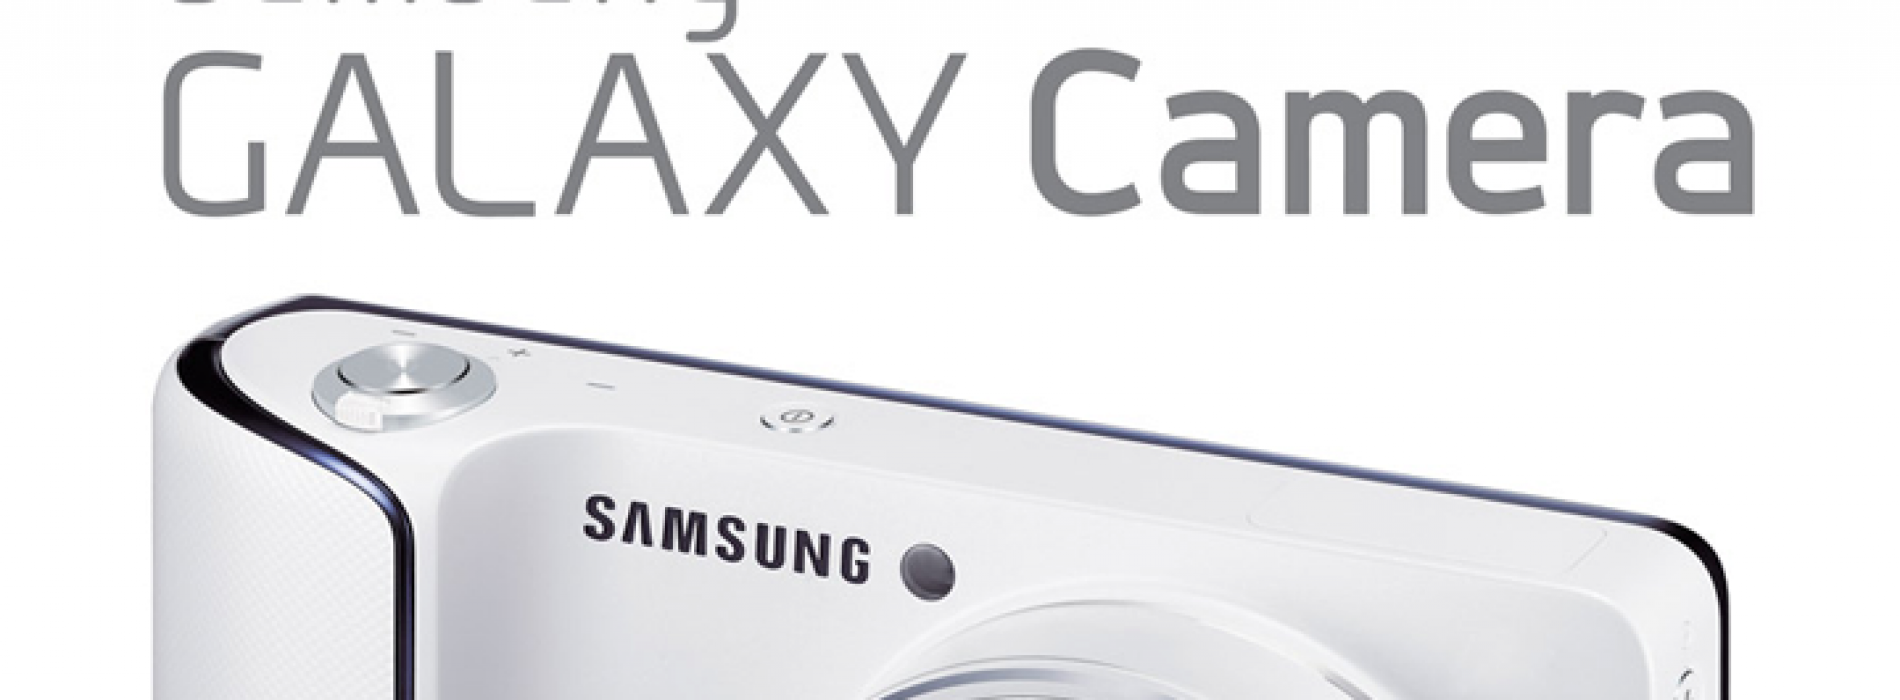 "AT&T to carry Samsung Galaxy Camera in ""coming weeks"""